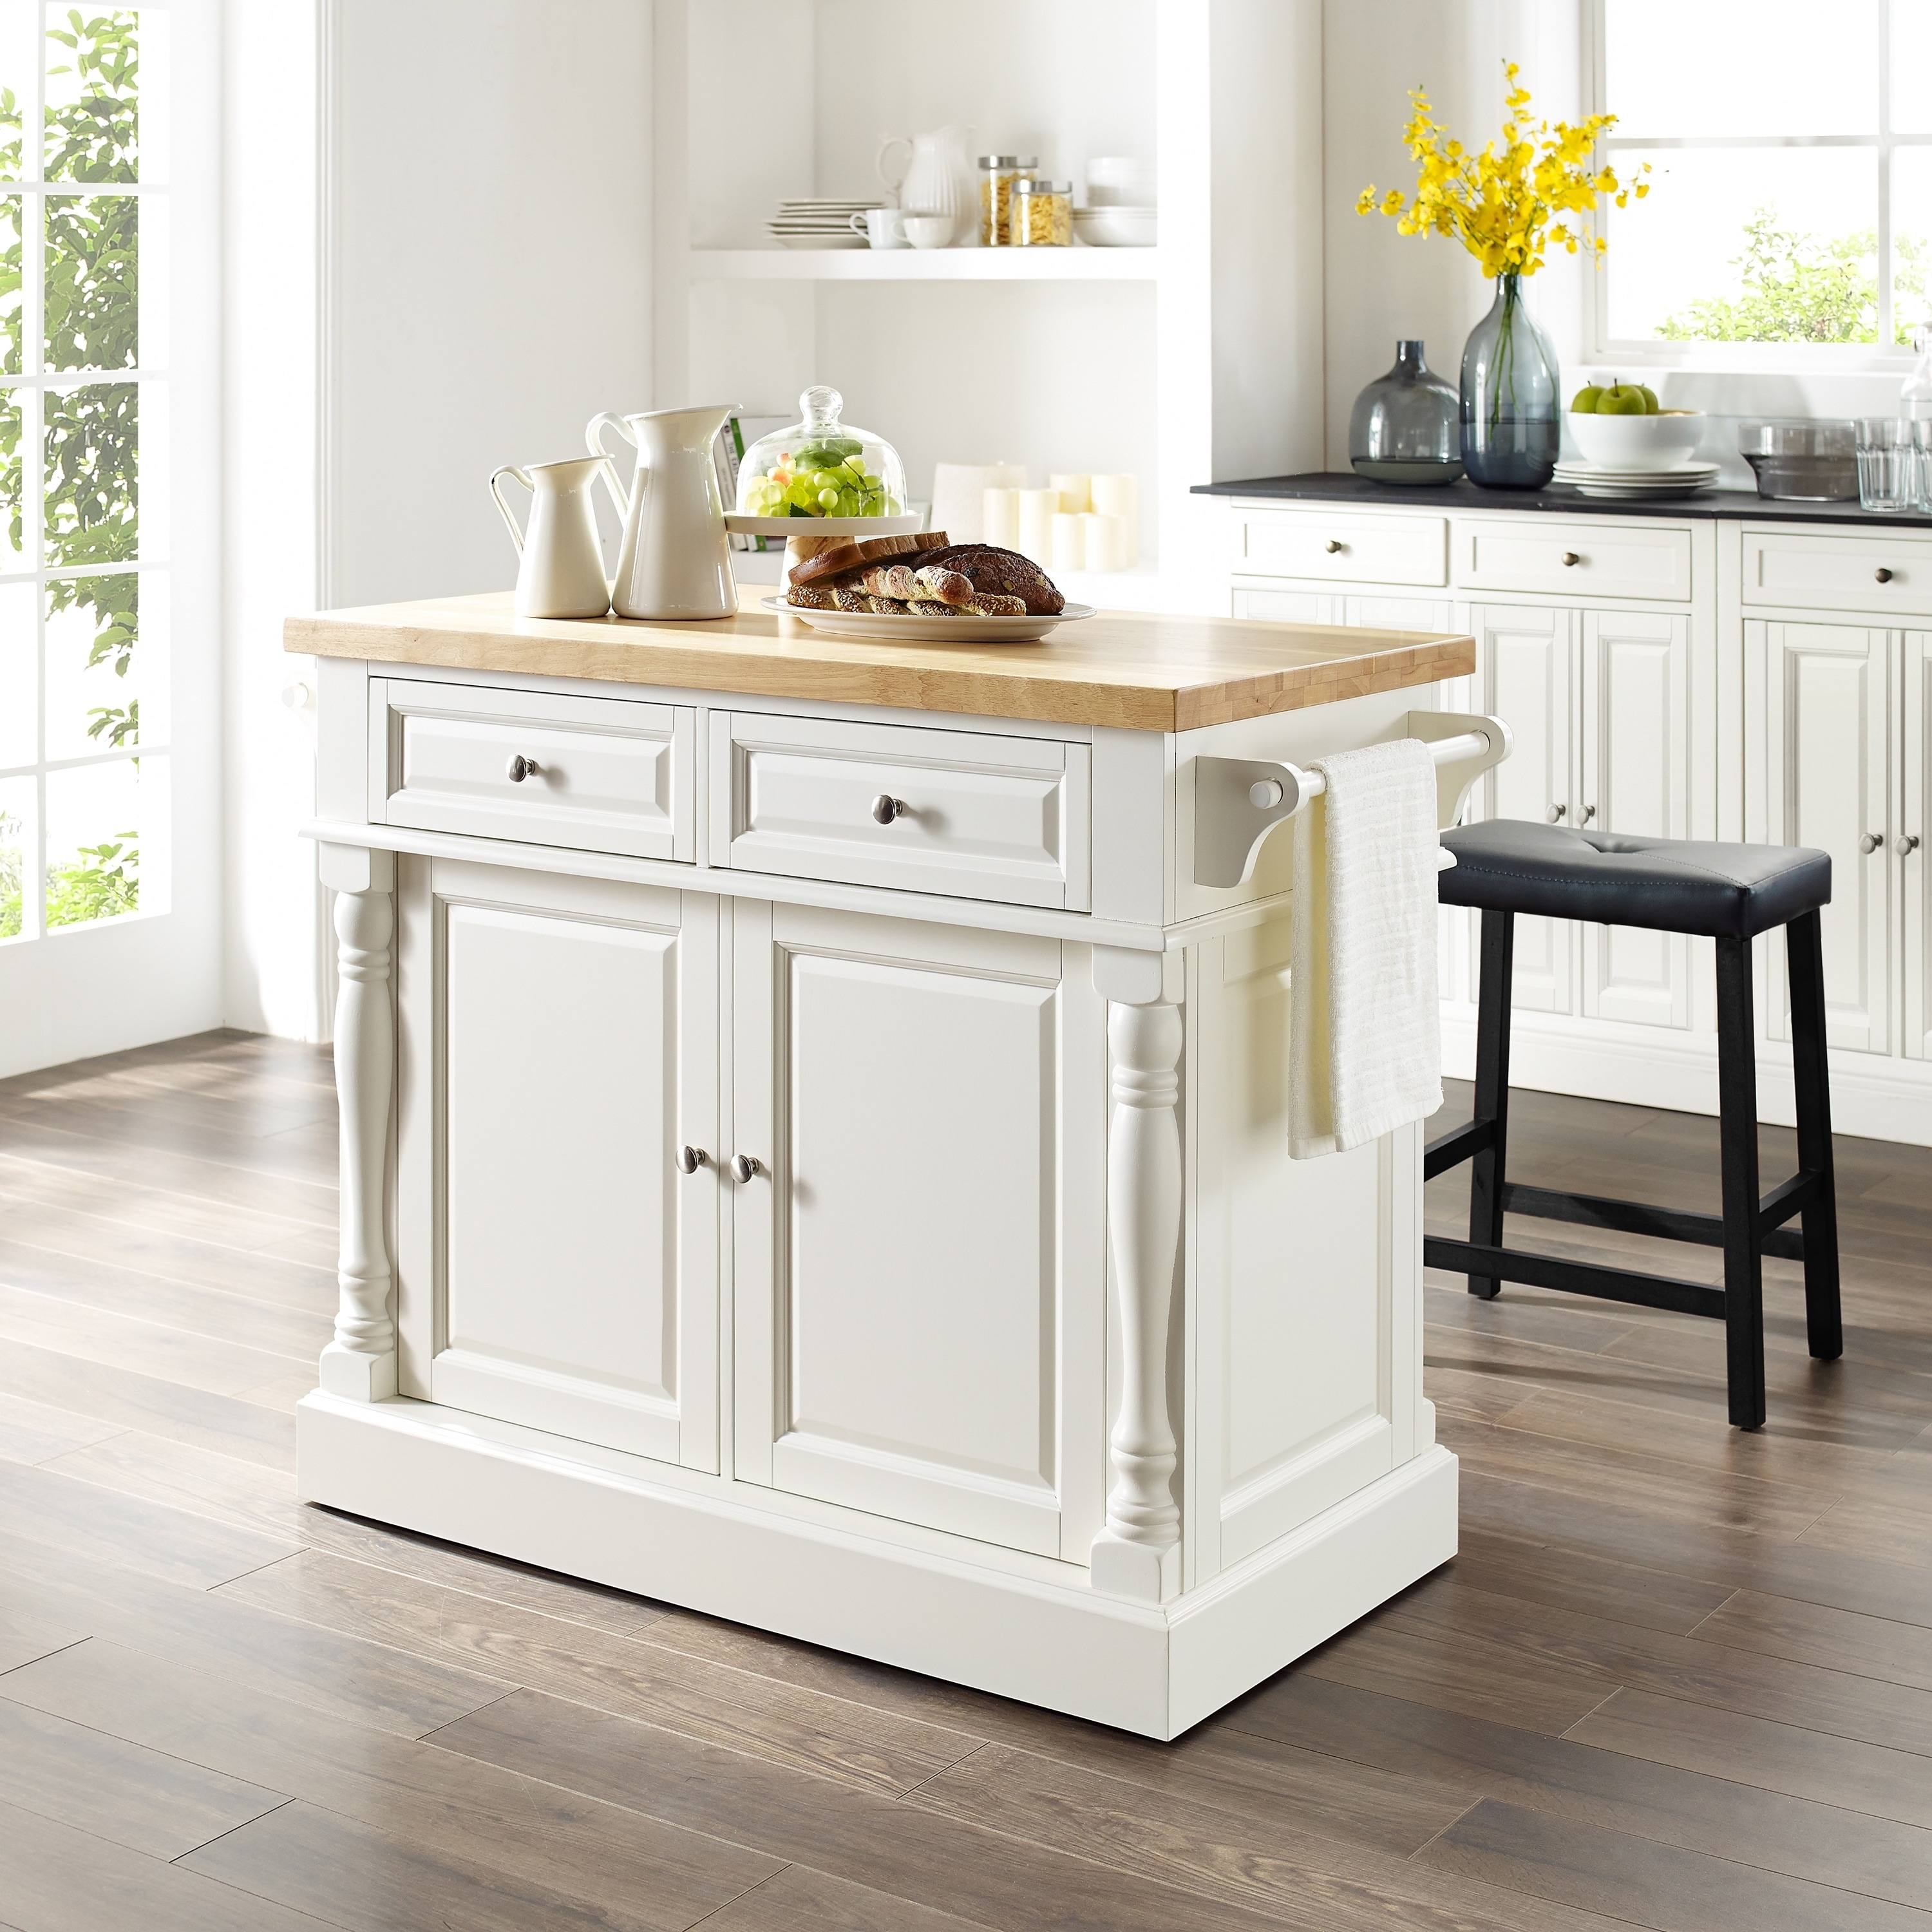 Copper Grove Kalesar Butcher Block Top White Kitchen Island With 24 Inch Black Upholstered Saddle Stools